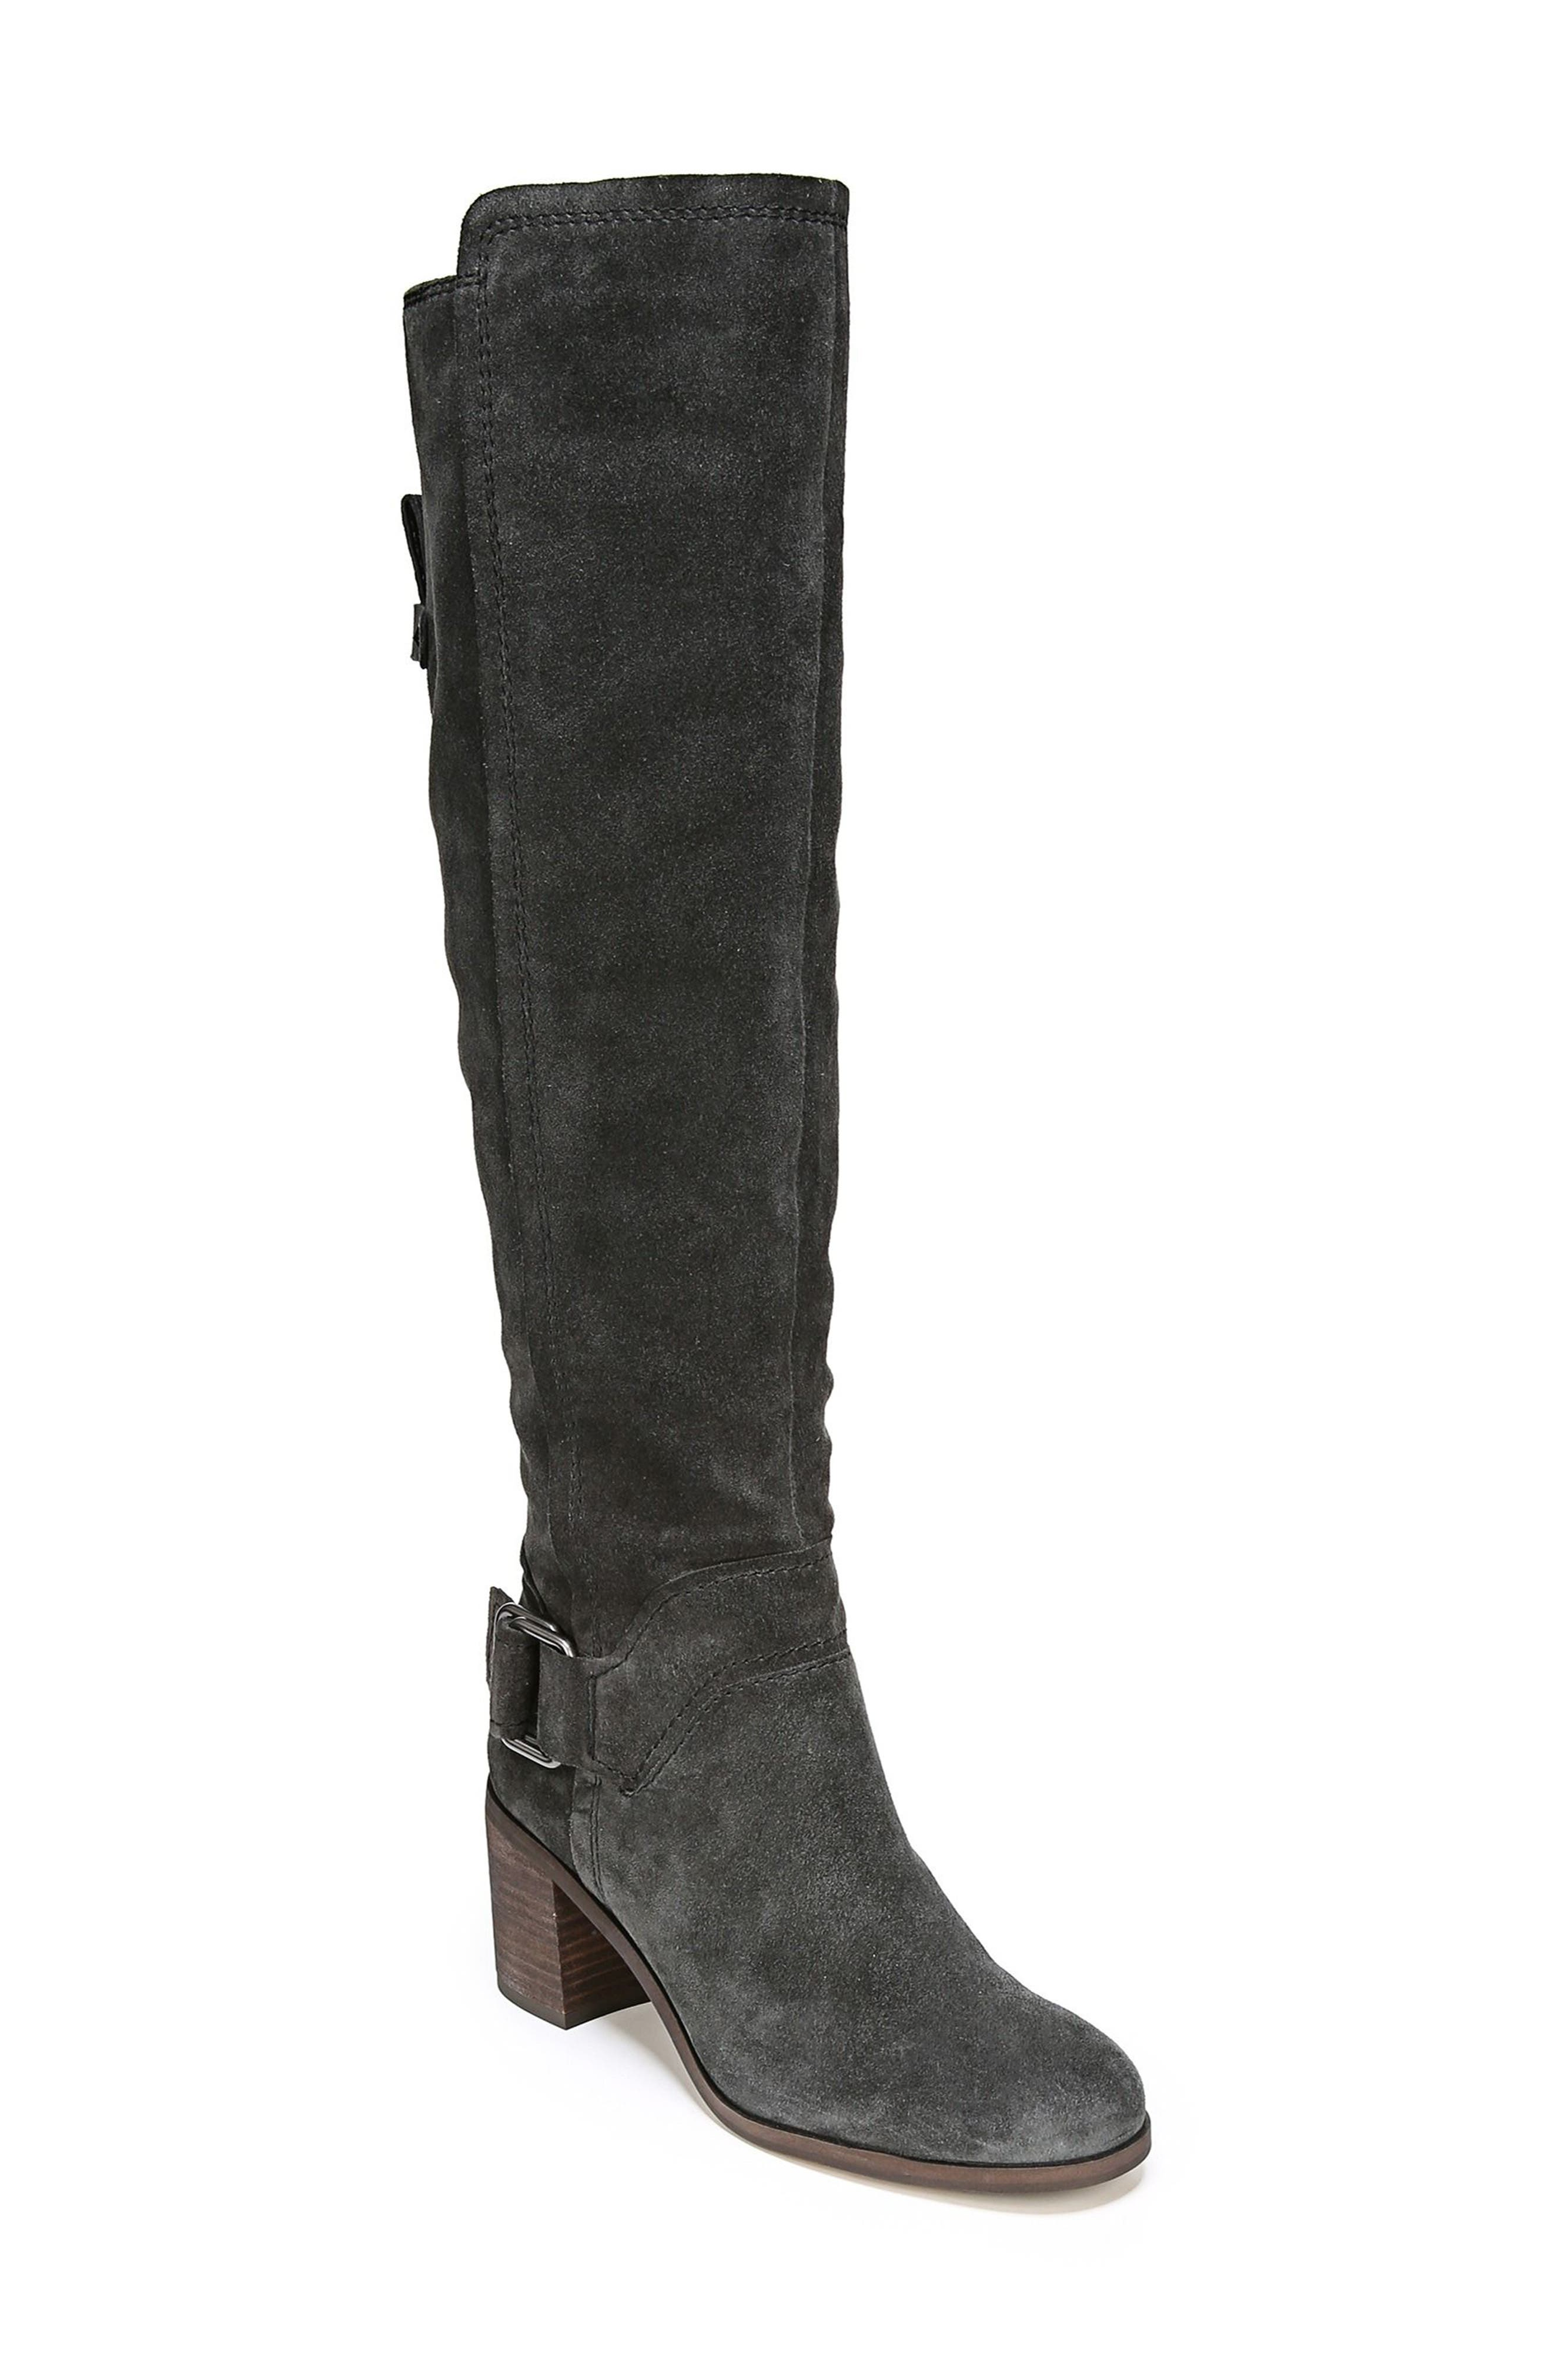 Alternate Image 1 Selected - SARTO by Franco Sarto Mystic Knee High Boot (Women)